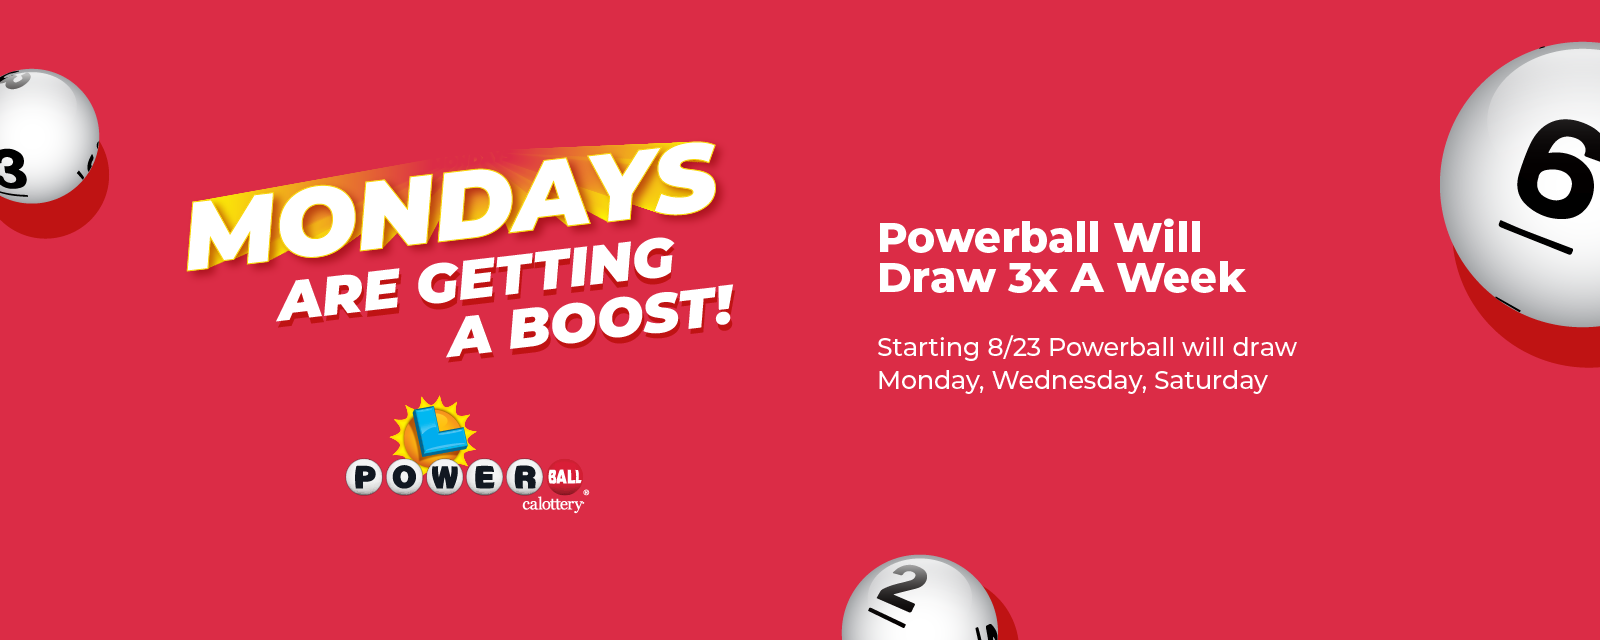 Mondays are getting a boost! Powerball will draw 3 times a week starting Monday, August 23rd. Now draws Monday, Wednesday, Saturday.